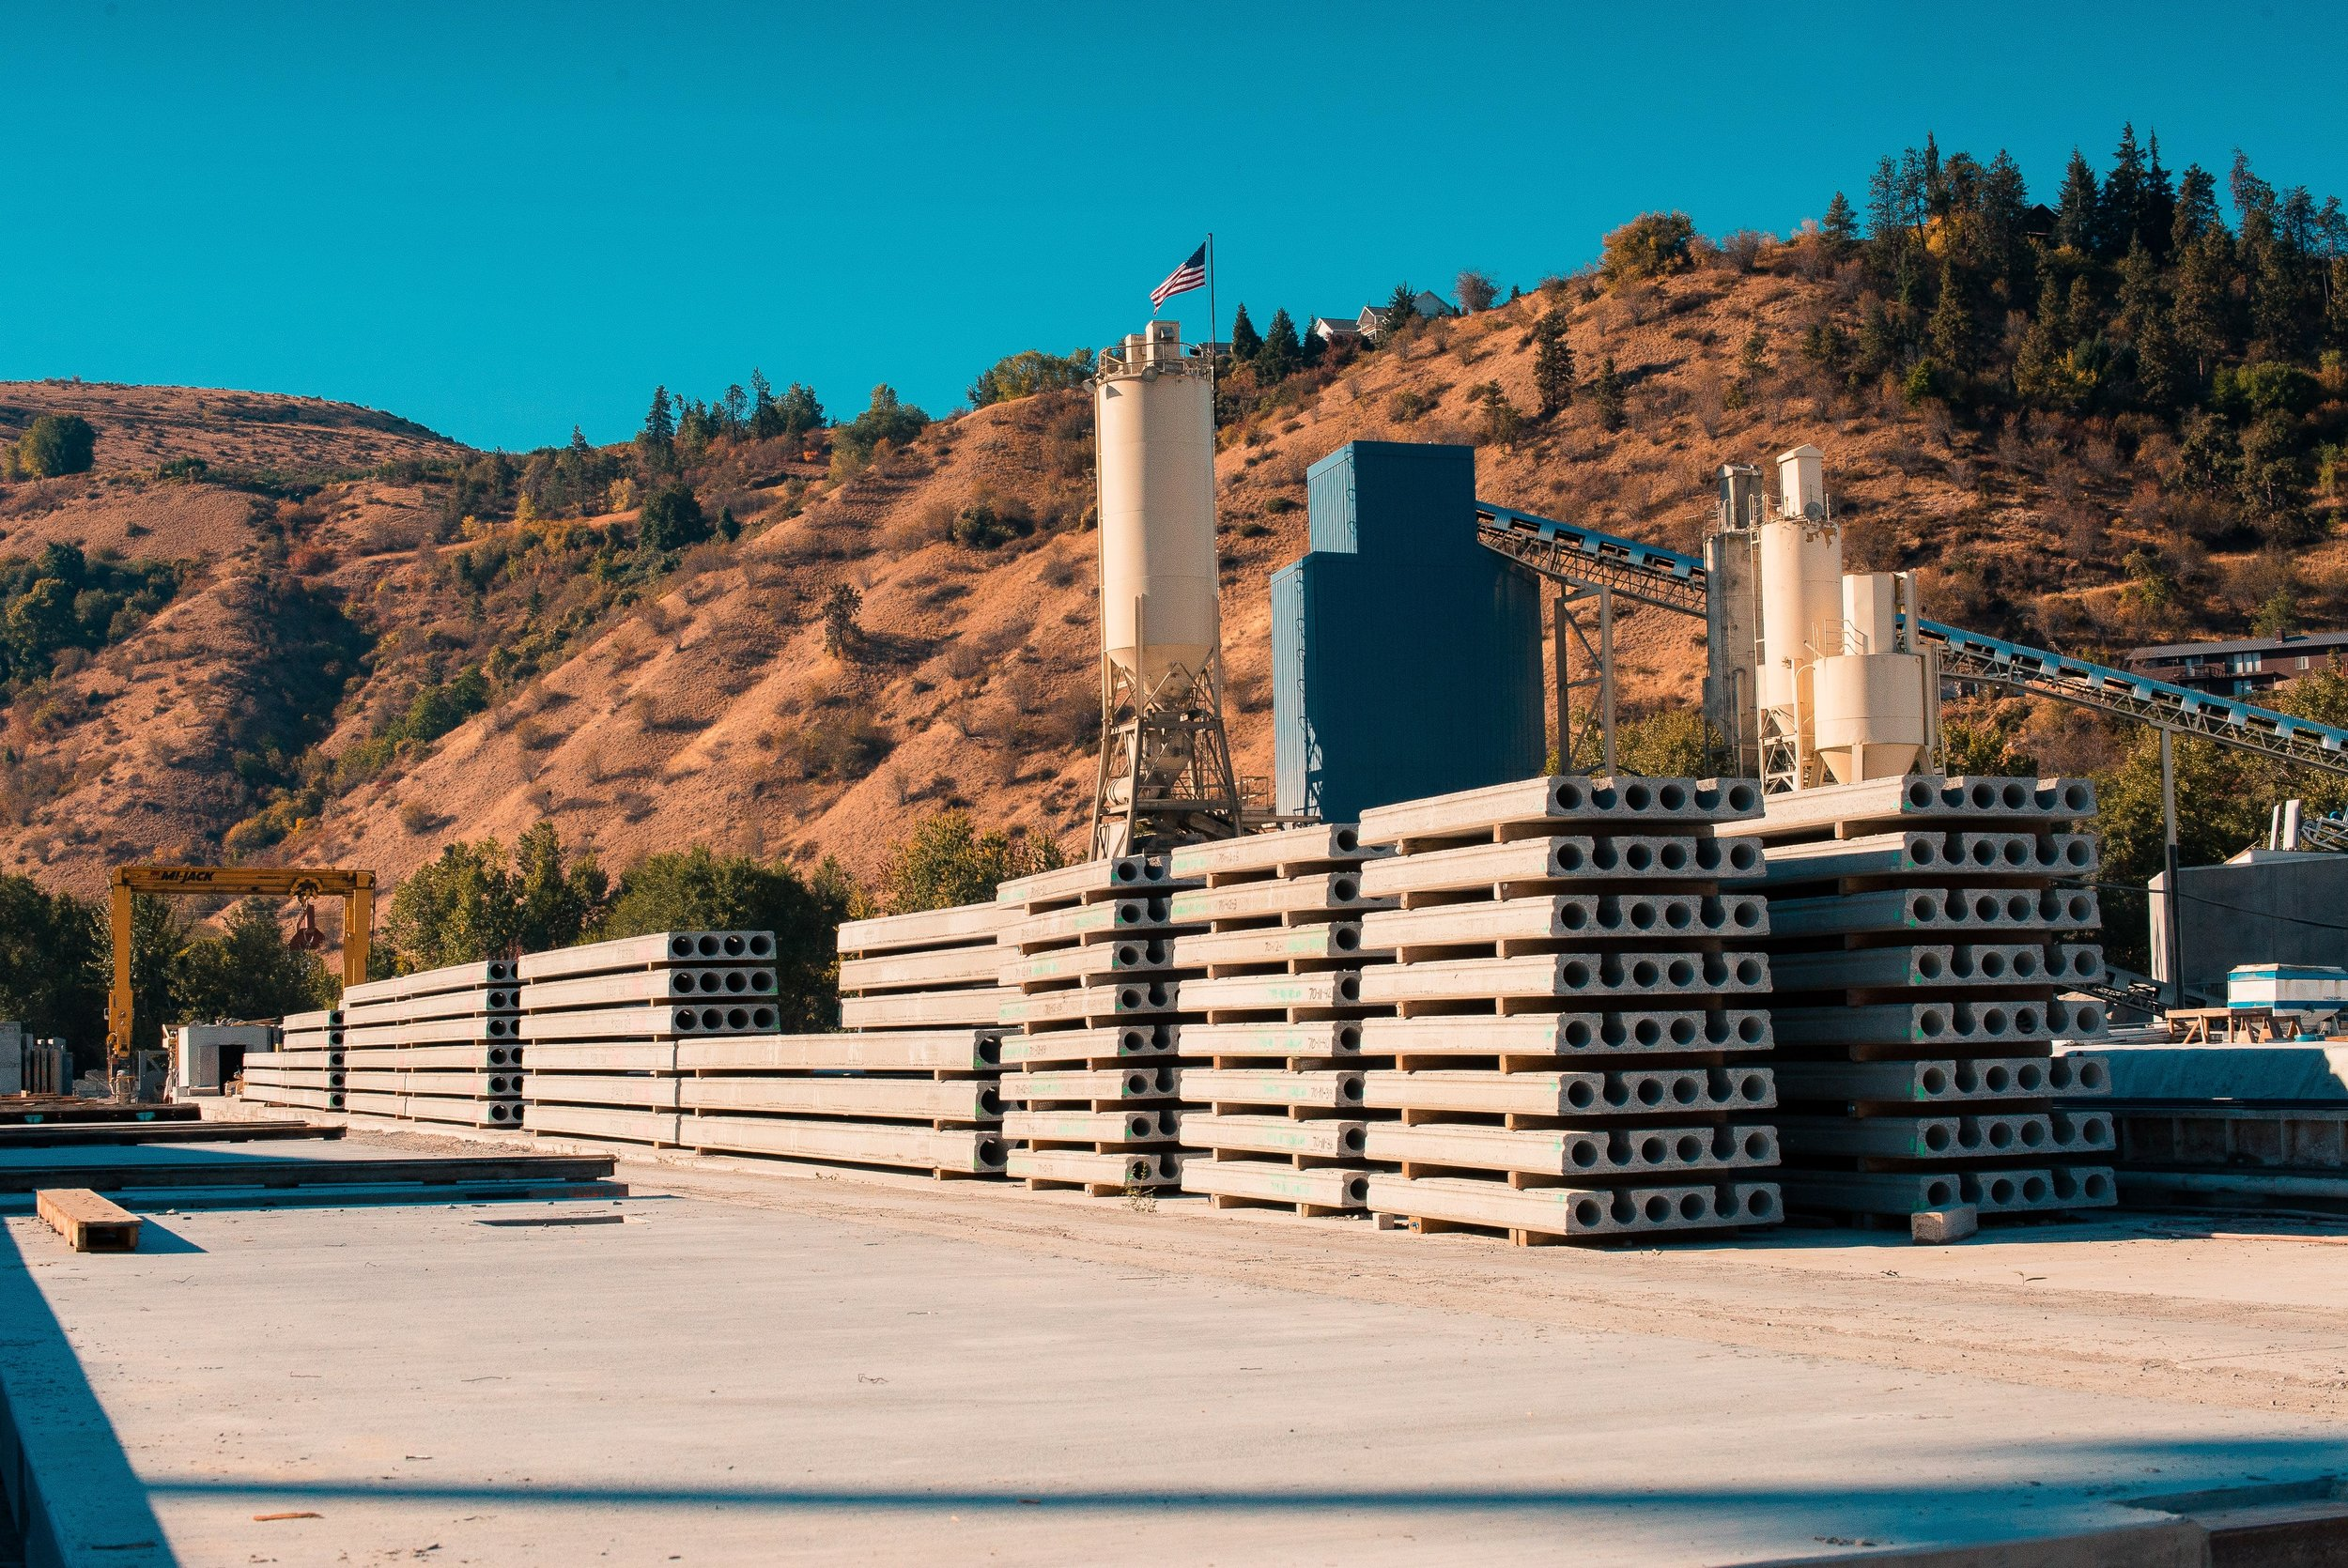 Precast Solutions - Precast/prestress concrete brings design flexibility, delivers a longer lasting structure, and shaves time off of the project schedule.